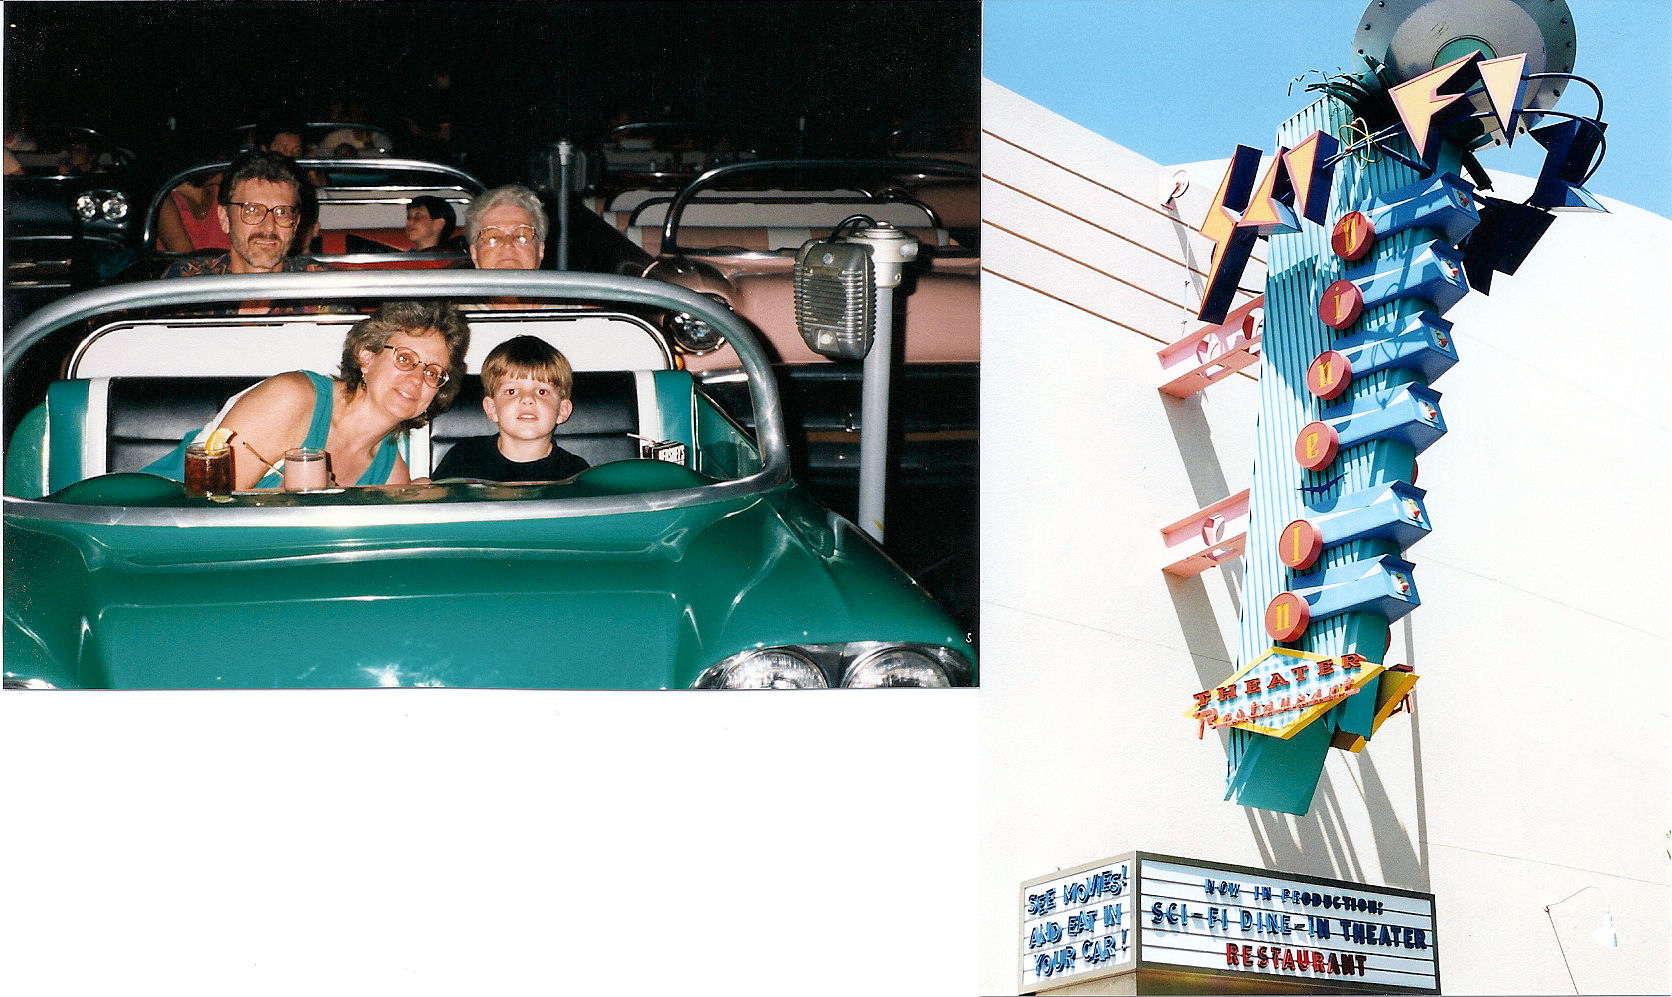 From left to right: my dad, my mom, my grandmother, and I inside the Sci-Fi Dine-In Theater and Disney's MGM Studios at Disney World and the outside of the restaurant.